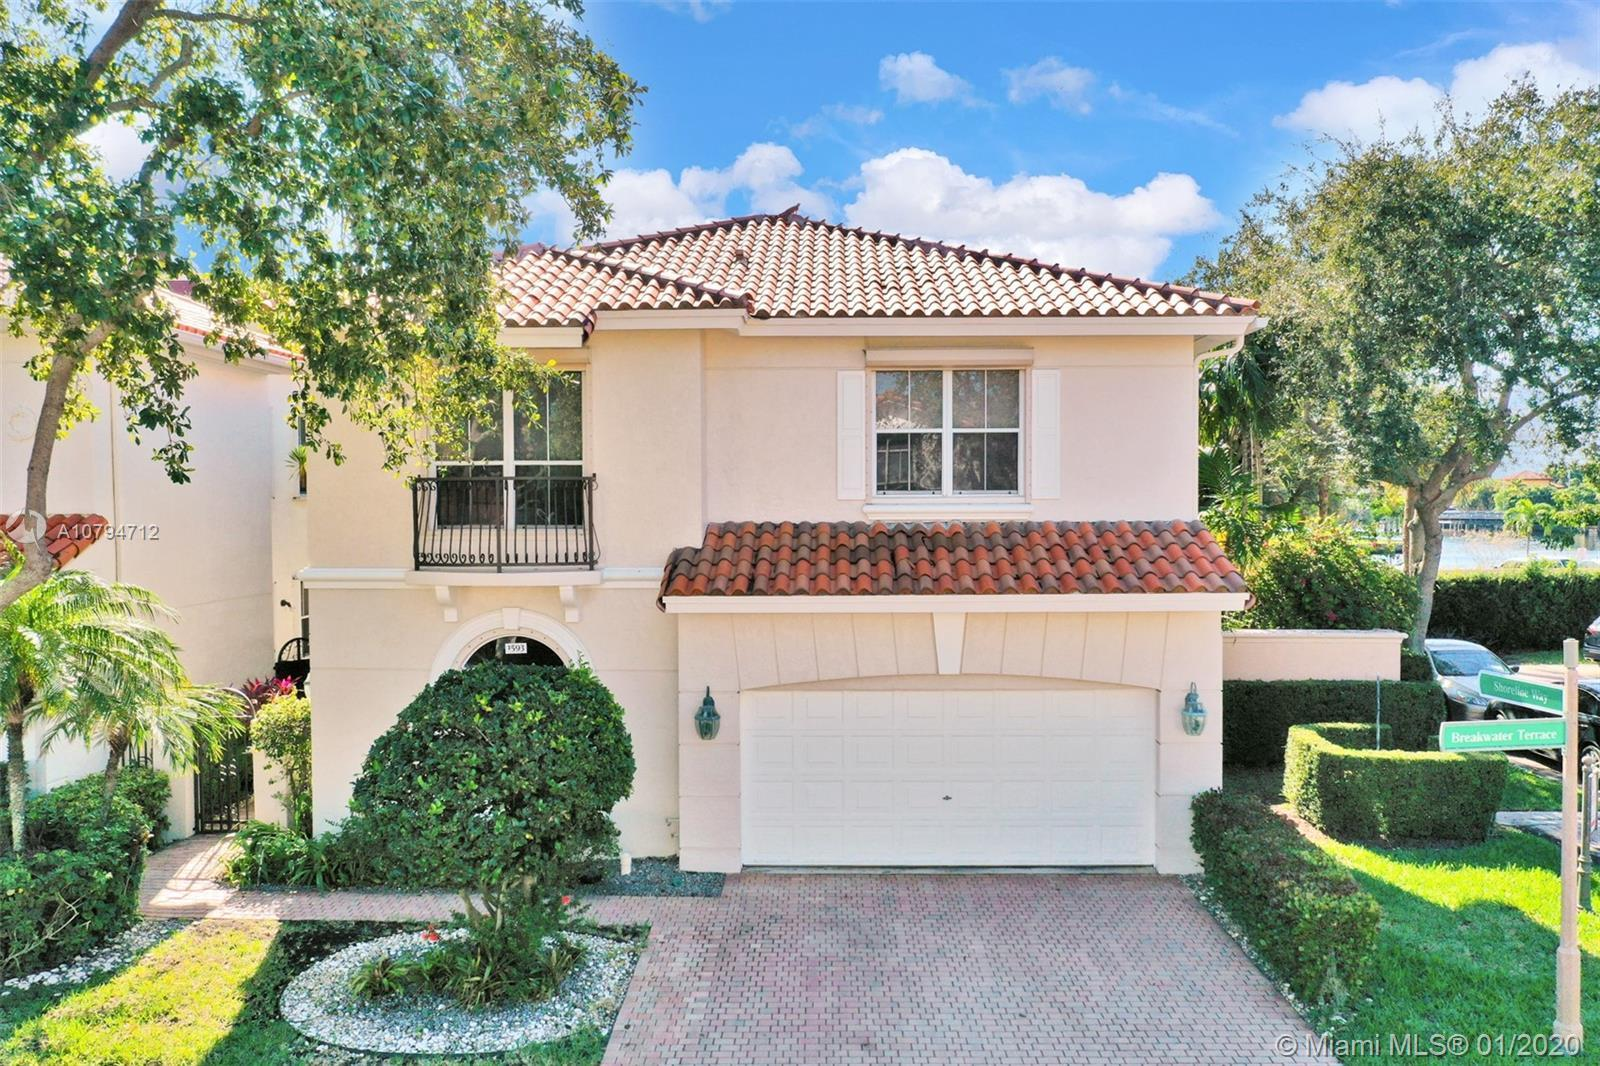 Located on a quiet tree lined street in the gated neighborhood of Harbor Islands, this one of a kind